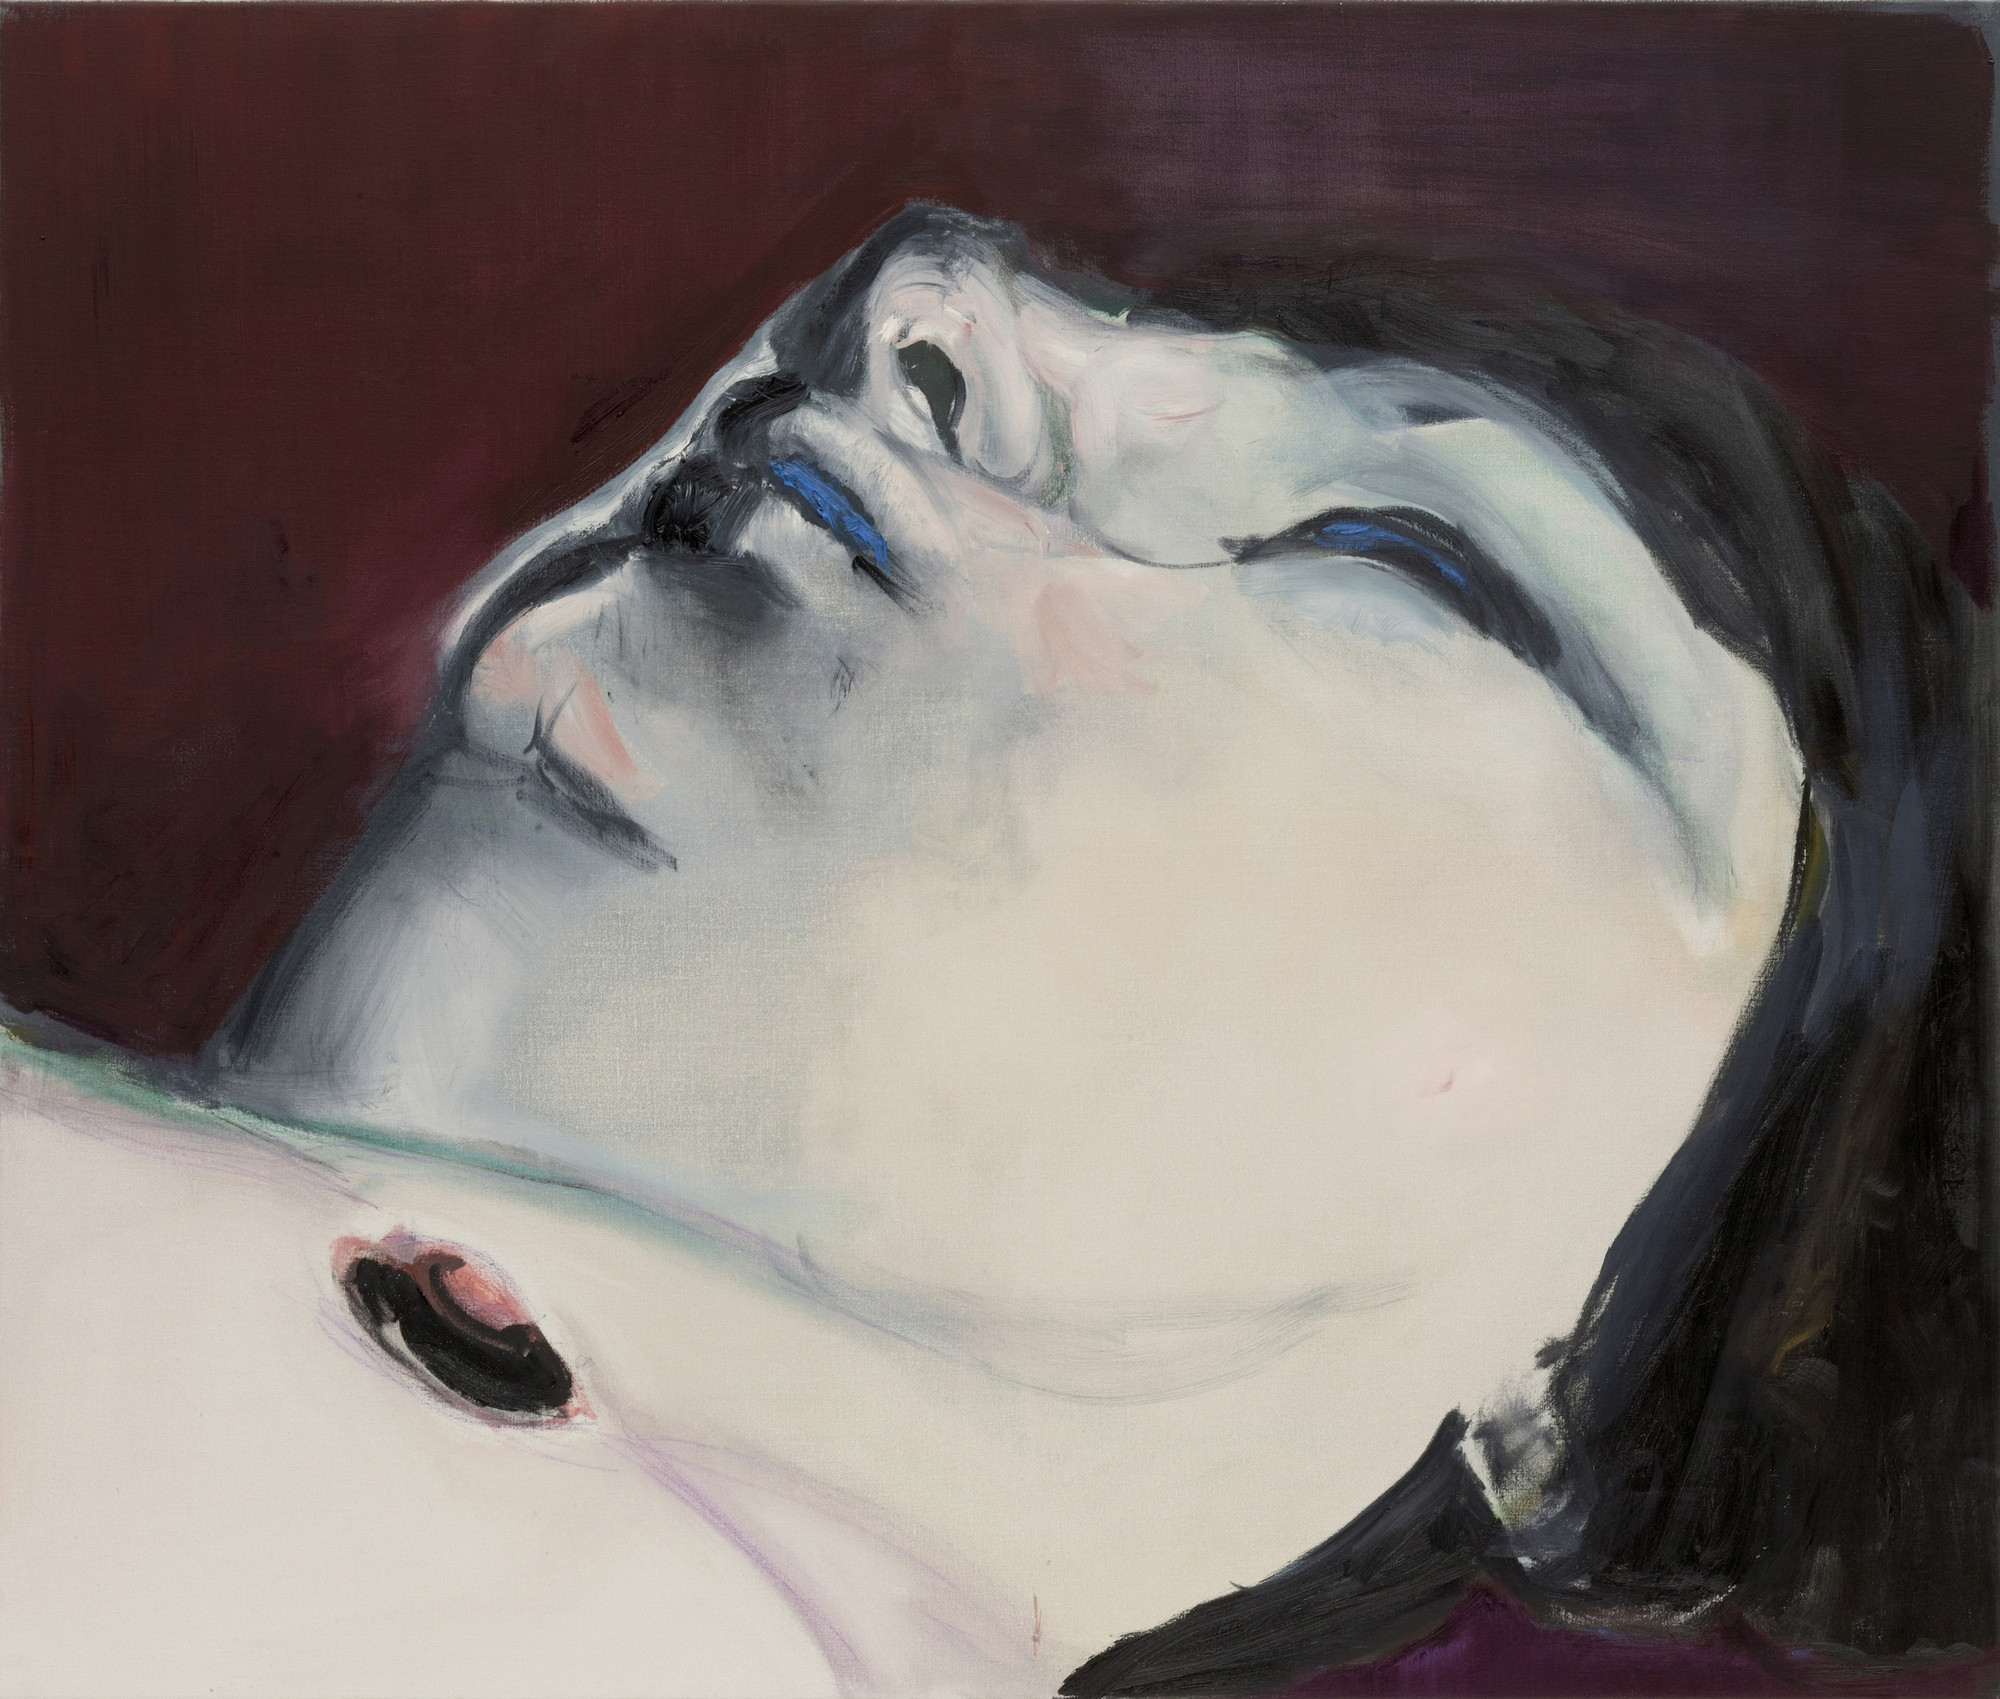 Marlene Dumas. Jen. 2005. Oil on canvas, 43 3⁄8 × 51 1/4″. The Museum of Modern Art, New York. Fractional and promised gift of Marie-Josée and Henry R. Kravis. © 2008 Marlene Dumas